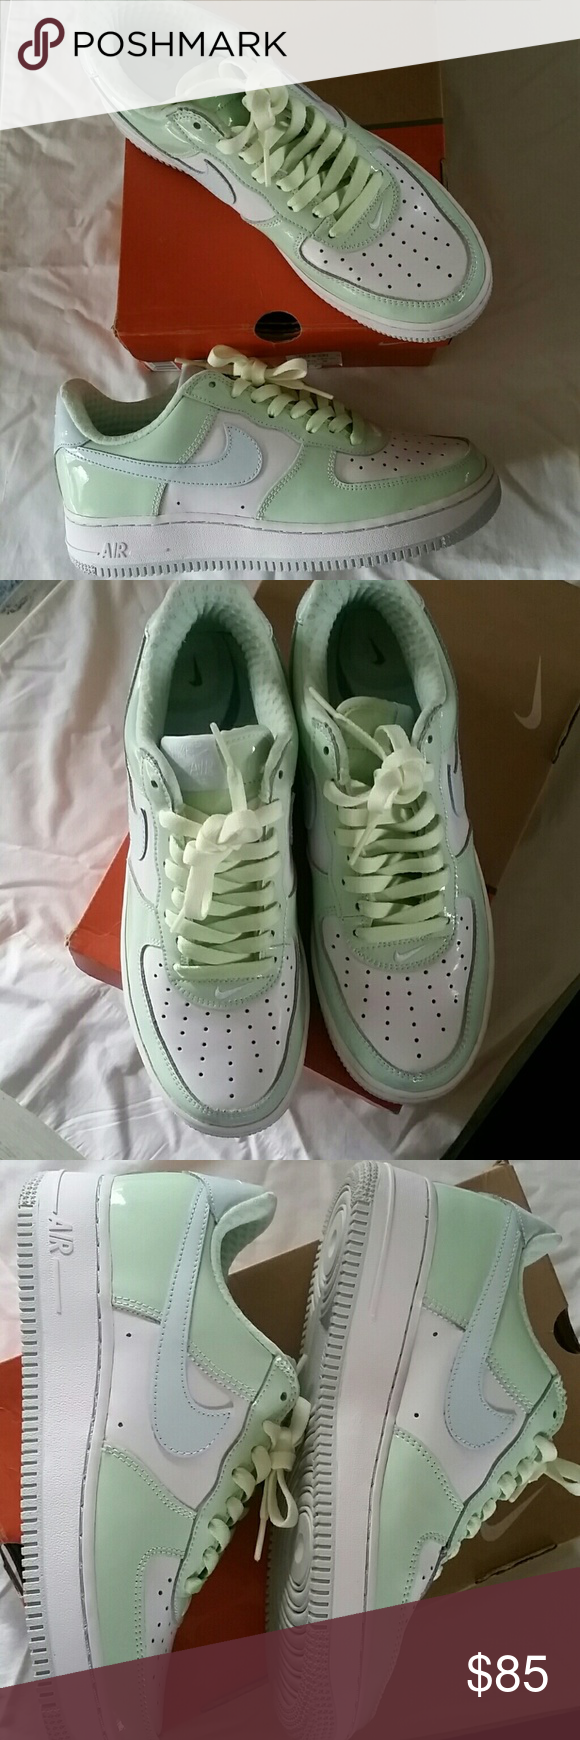 Nike Air Force 1's - BRAND NEW Brand new Women's Nike Air Force 1's premiums!  Worn only to try on, never been worn outside.  No creases at the toes and laces are crispy clean!  These shoes are patent leather white,  pastel green,  and pastel baby blue with pastel green laces. Original box included.  Please note I did write on the box to label it but box is in perfect condition. Nike  Shoes Athletic Shoes